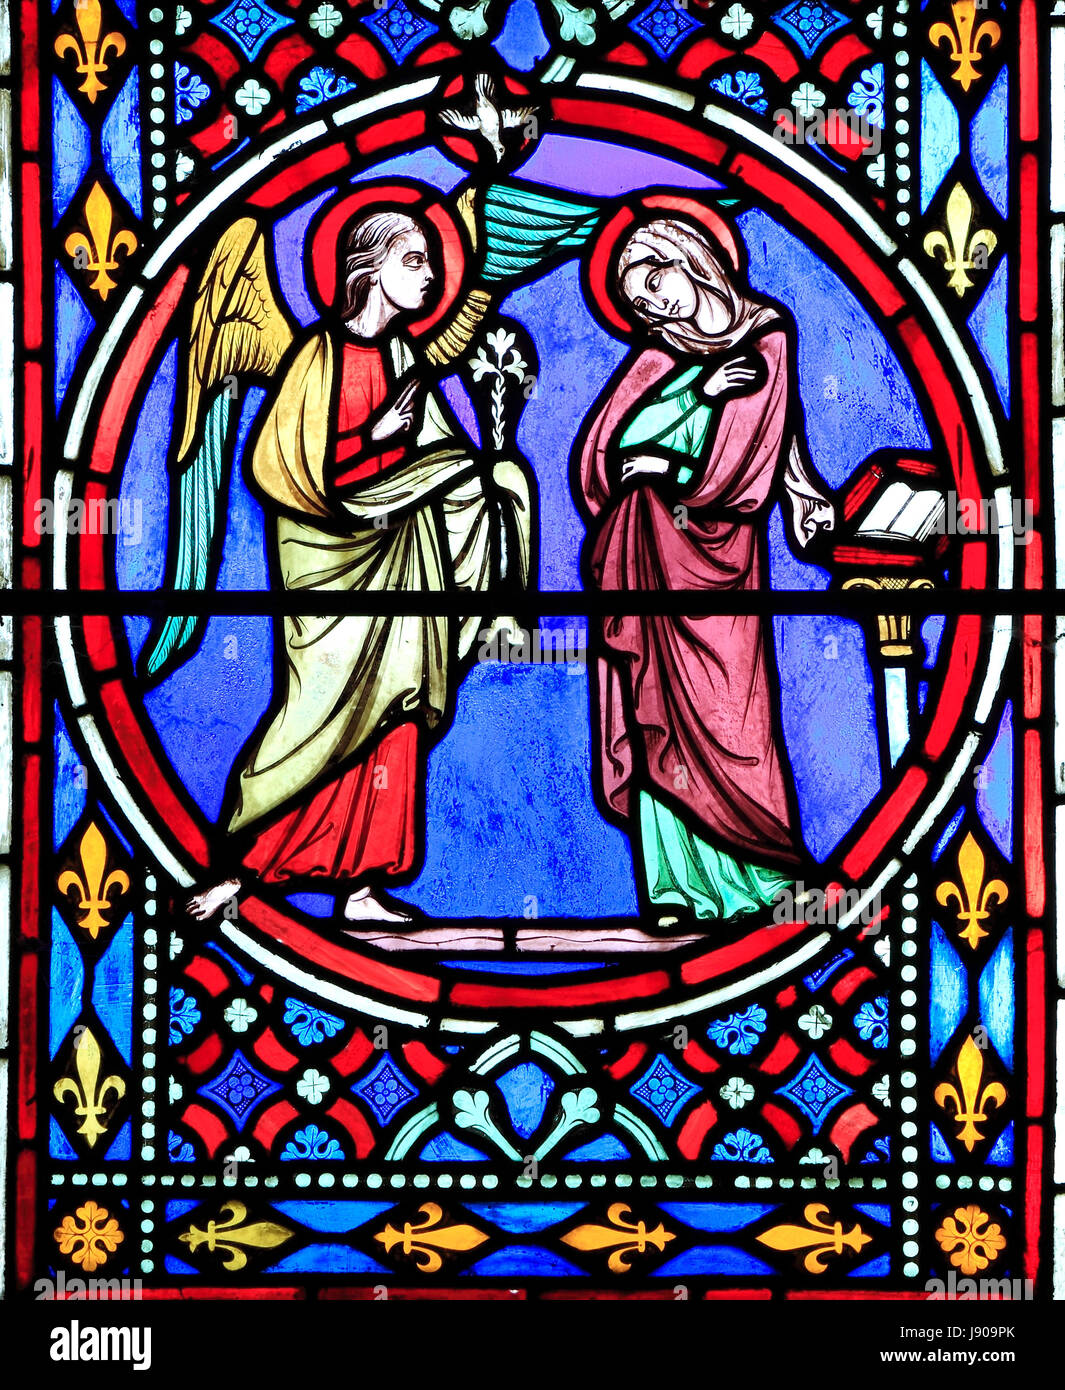 Nativity Window, stained glass by Oudinot of Paris, 1861, Feltwell Church, Norfolk, Annunciation by Archangel Gabriel - Stock Image